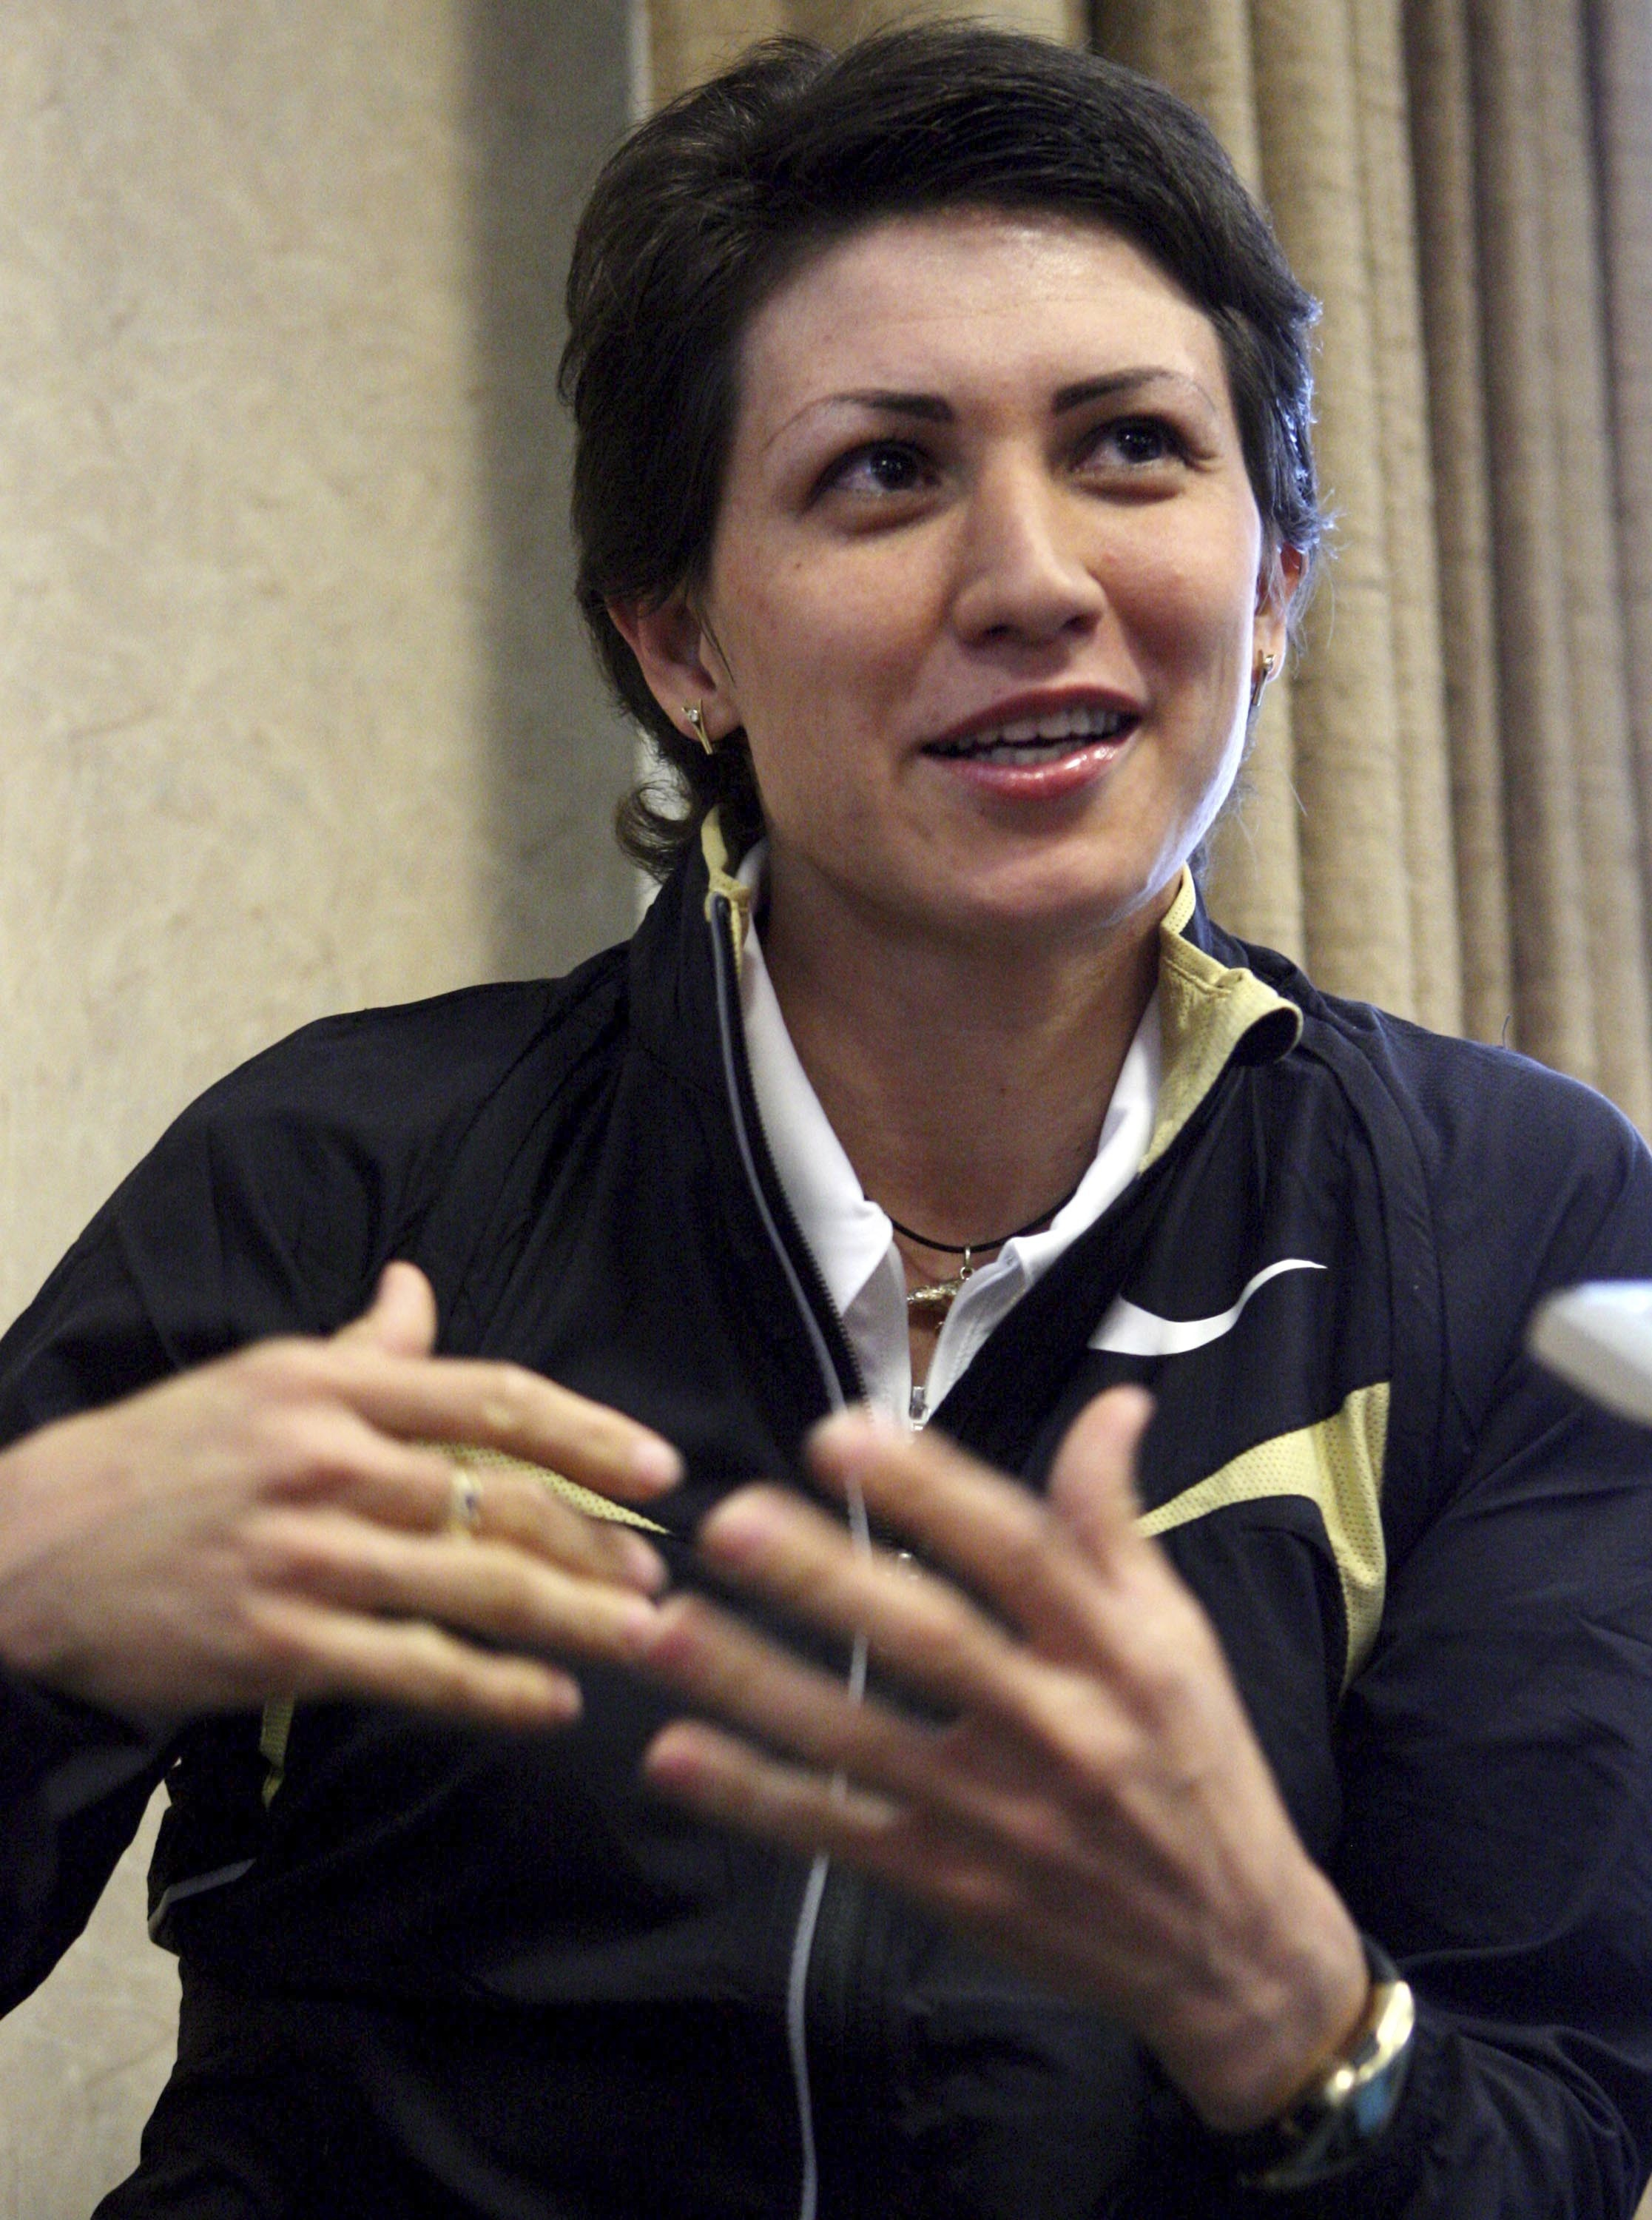 FILE In this Saturday, June 7, 2008 file photo long jumper,Tatyana Lebedeva of Russia, makes remarks during a Prefontaine Classic news conference in Eugene, Ore. The Russian doping scandal hit a high-profile political target Wednesday. Jan. 25, 2017 with